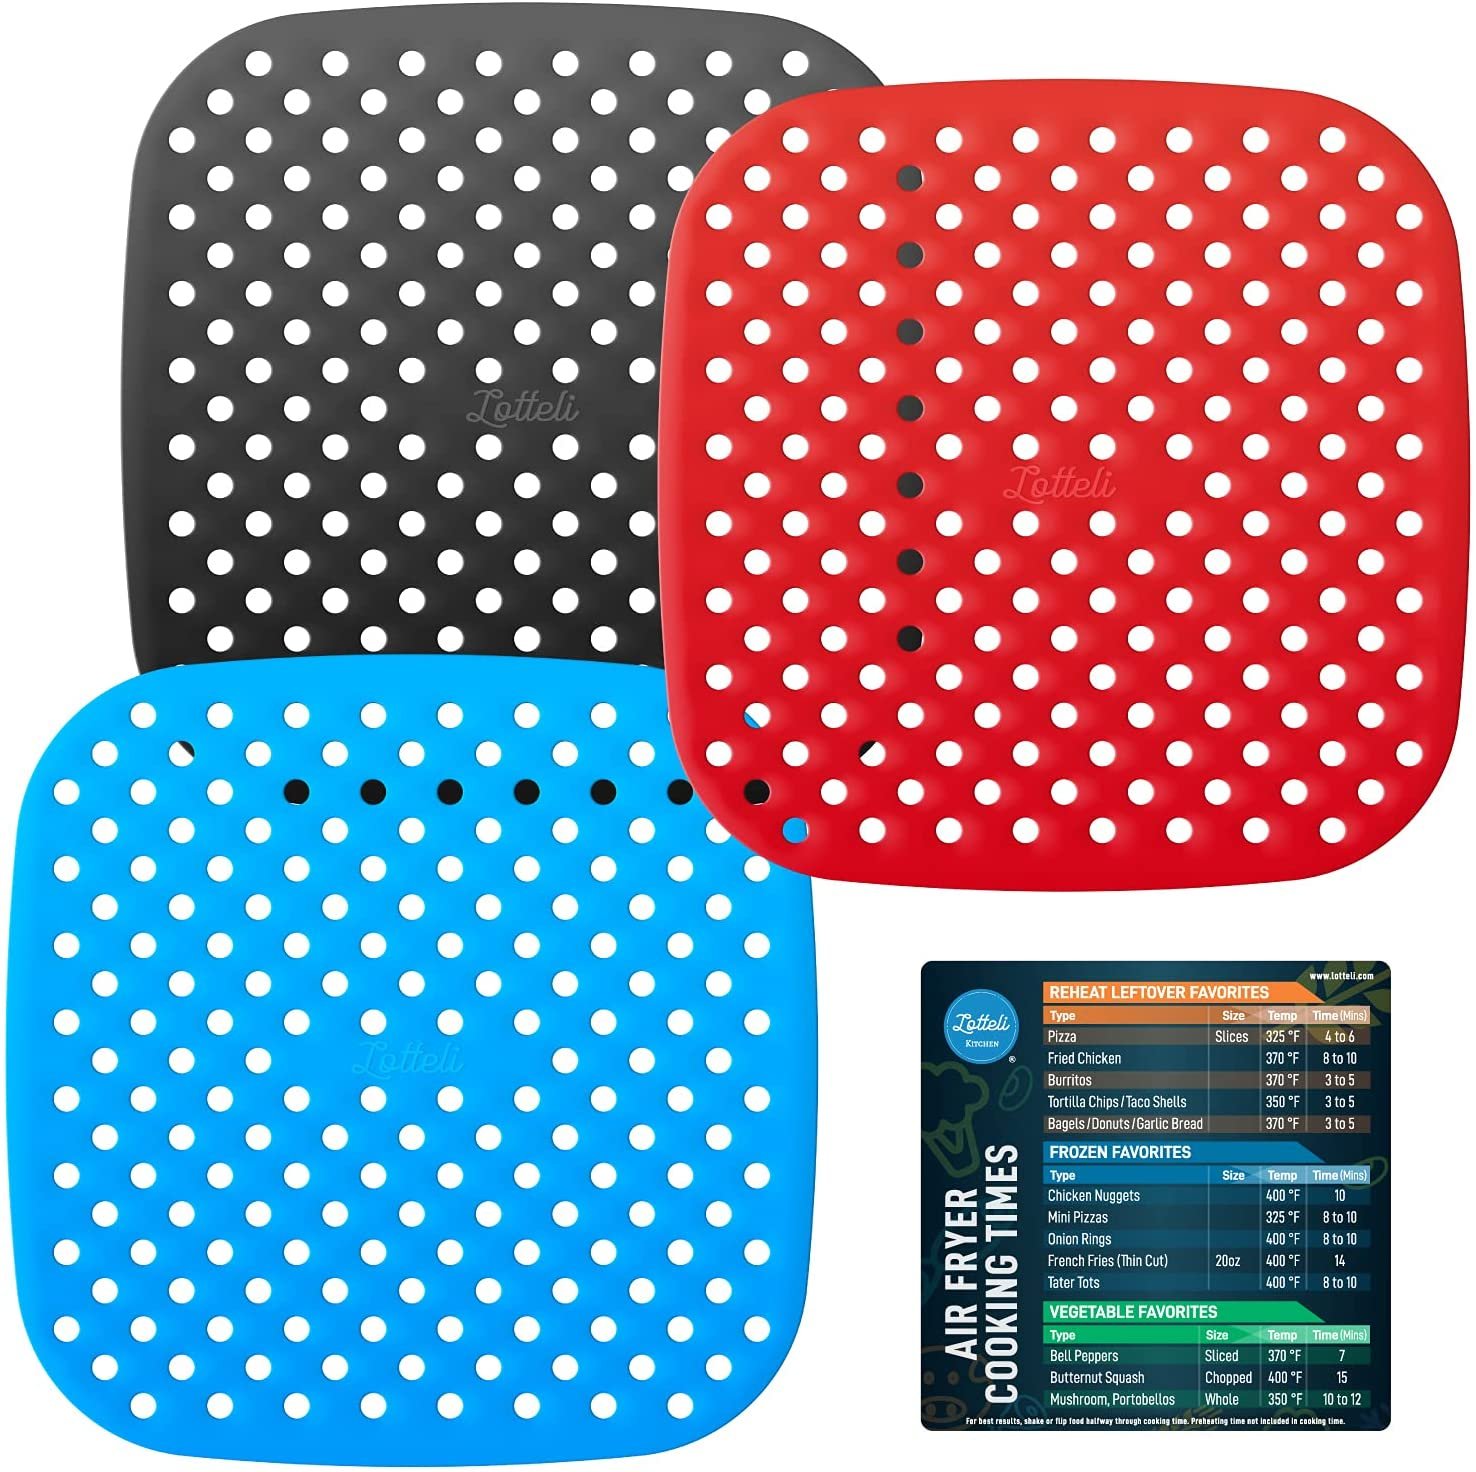 Lotteli Kitchen Reusable Silicone Air Fryer Liners 3 Pack with Air Fryer Magnetic Cheat Sheet, Easy Clean Air Fryer Accessories, Non Stick, AirFryer Accessory Parchment Paper Replacement - 8.5